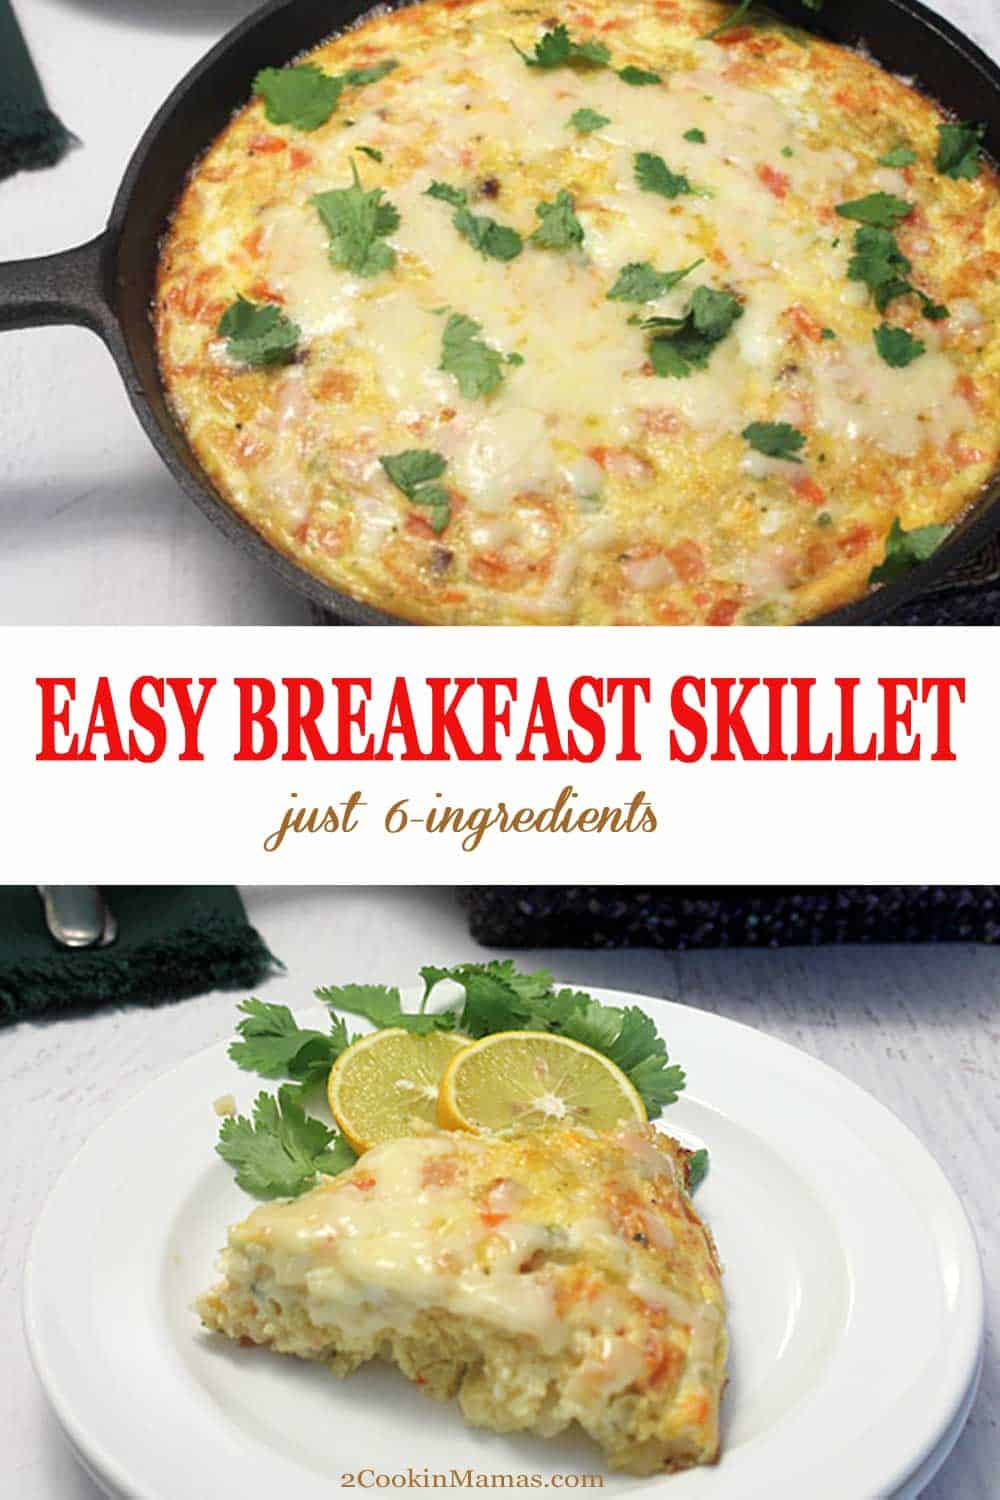 Easy Breakfast Skillet | 2 Cookin Mamas Make this easy breakfast skillet with only 6 ingredients & one pan! Mix bacon, eggs, hash browns, salsa & cheese then bake. Delicious breakfast without the fuss! #breakfast #eggs #recipe #bacon #hashbrowns #easy #onepan #ironskillet